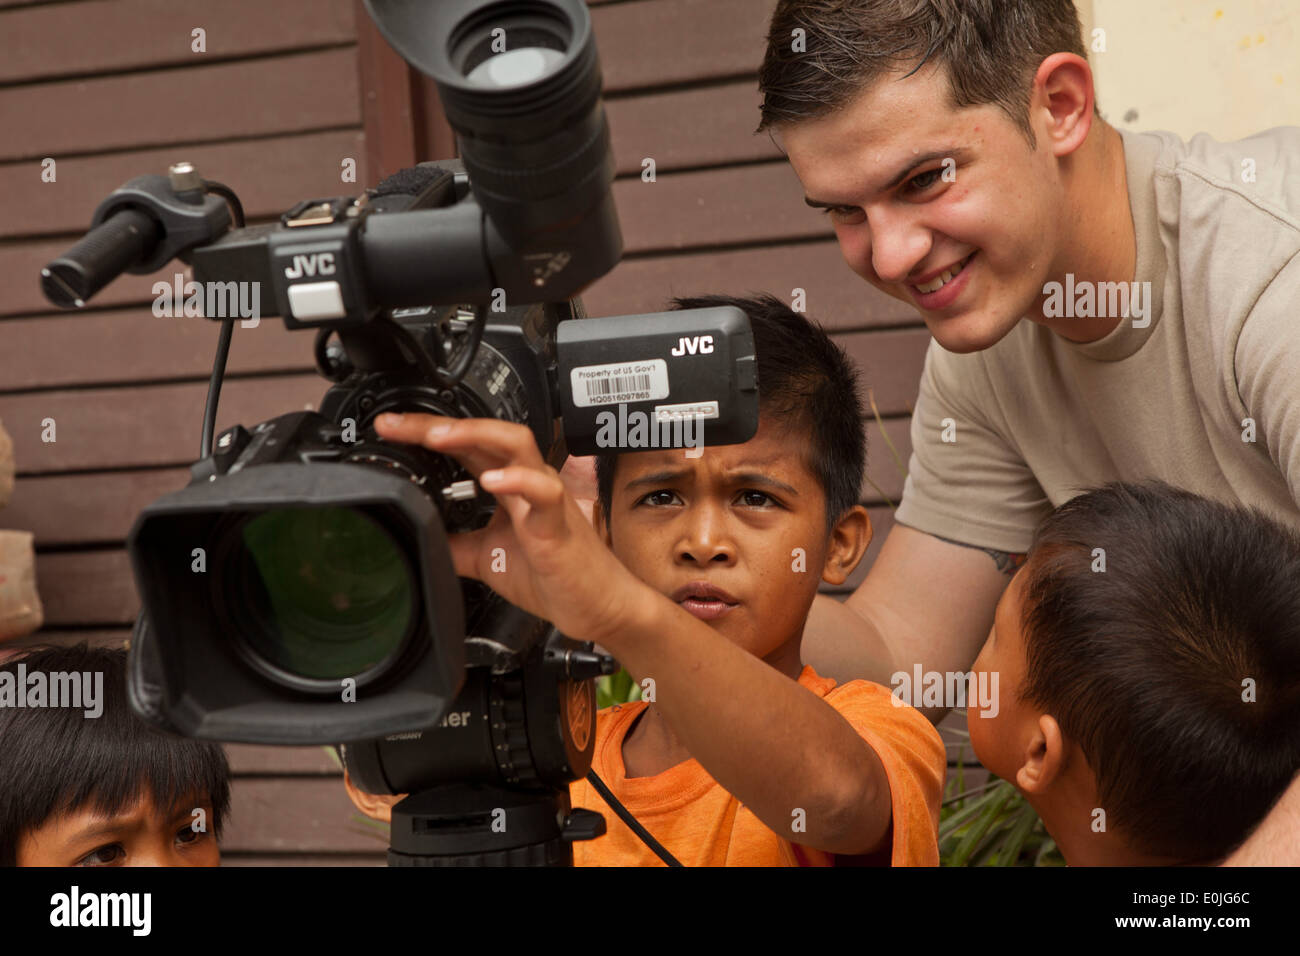 U.S. Air Force Airman 1st Class, William Branch, Armed Forces Network - Okinawa, Japan, shows a local student how to record vid - Stock Image